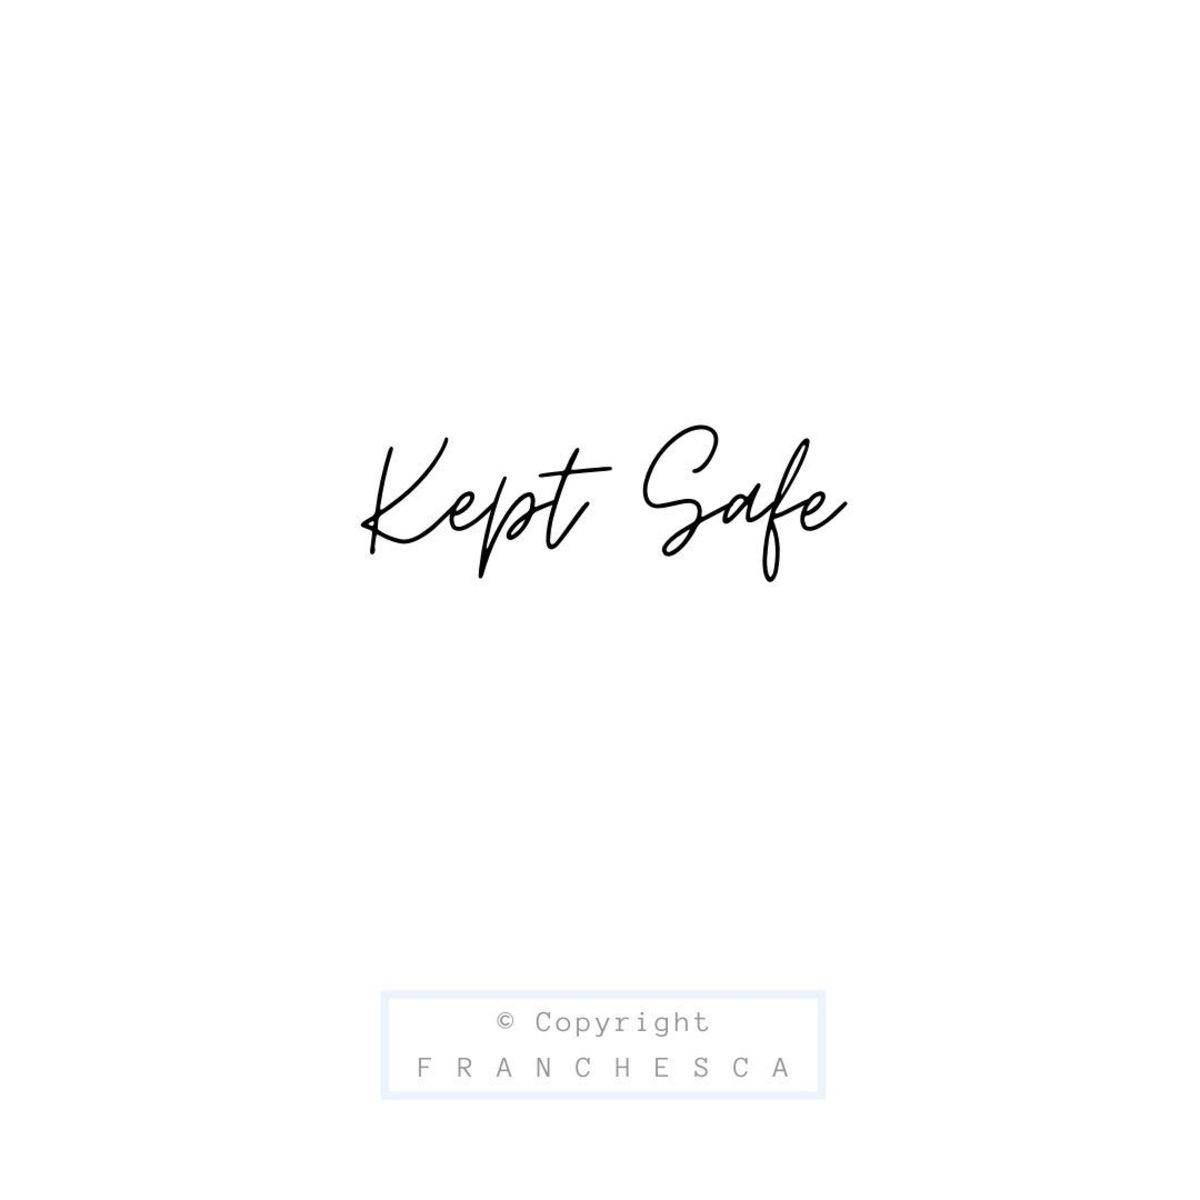 175th-article-kept-safe